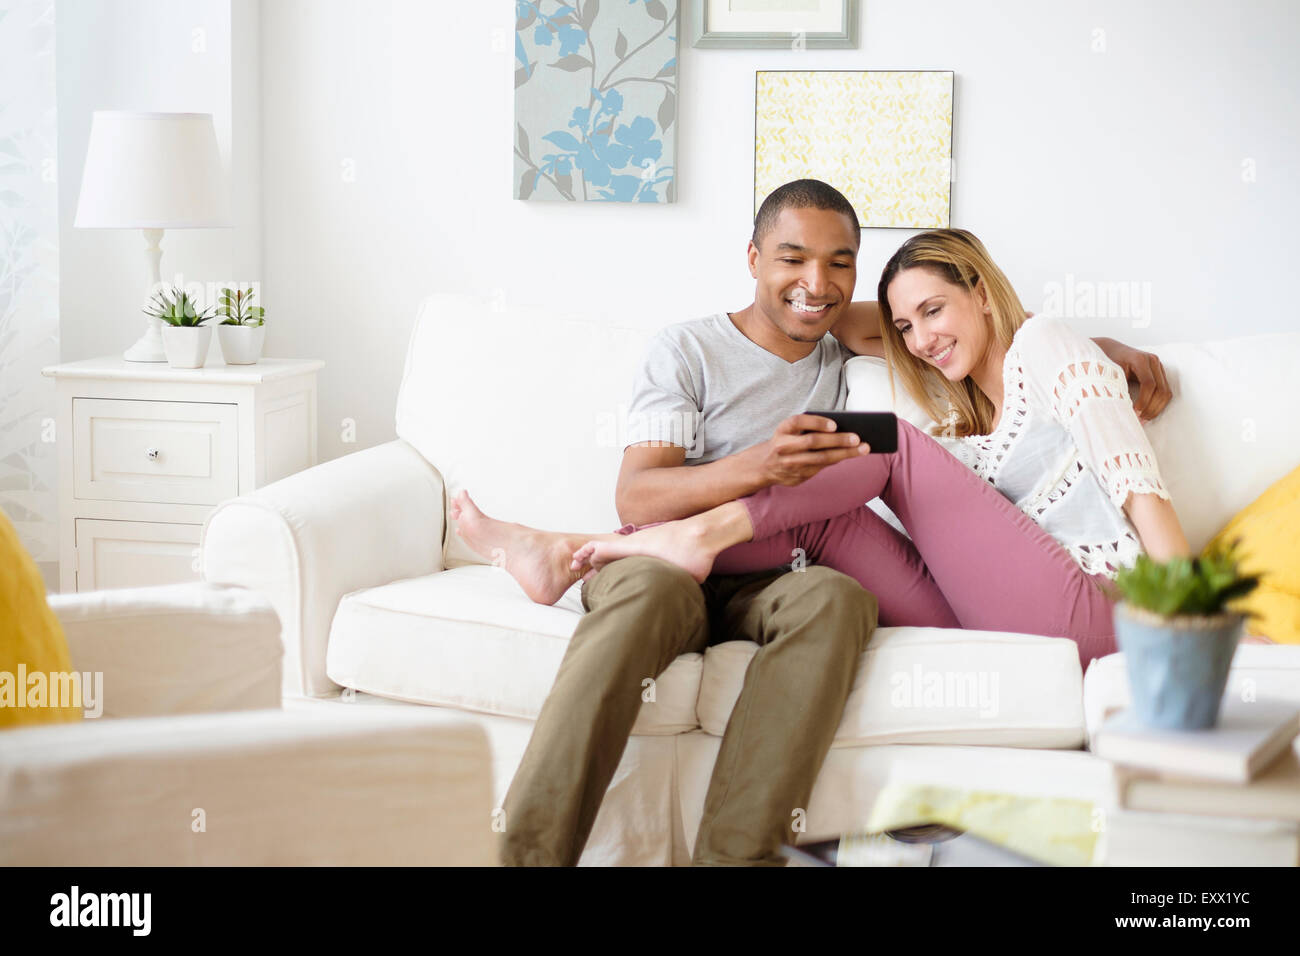 Mid adult couple looking at smart phone in living room Photo Stock